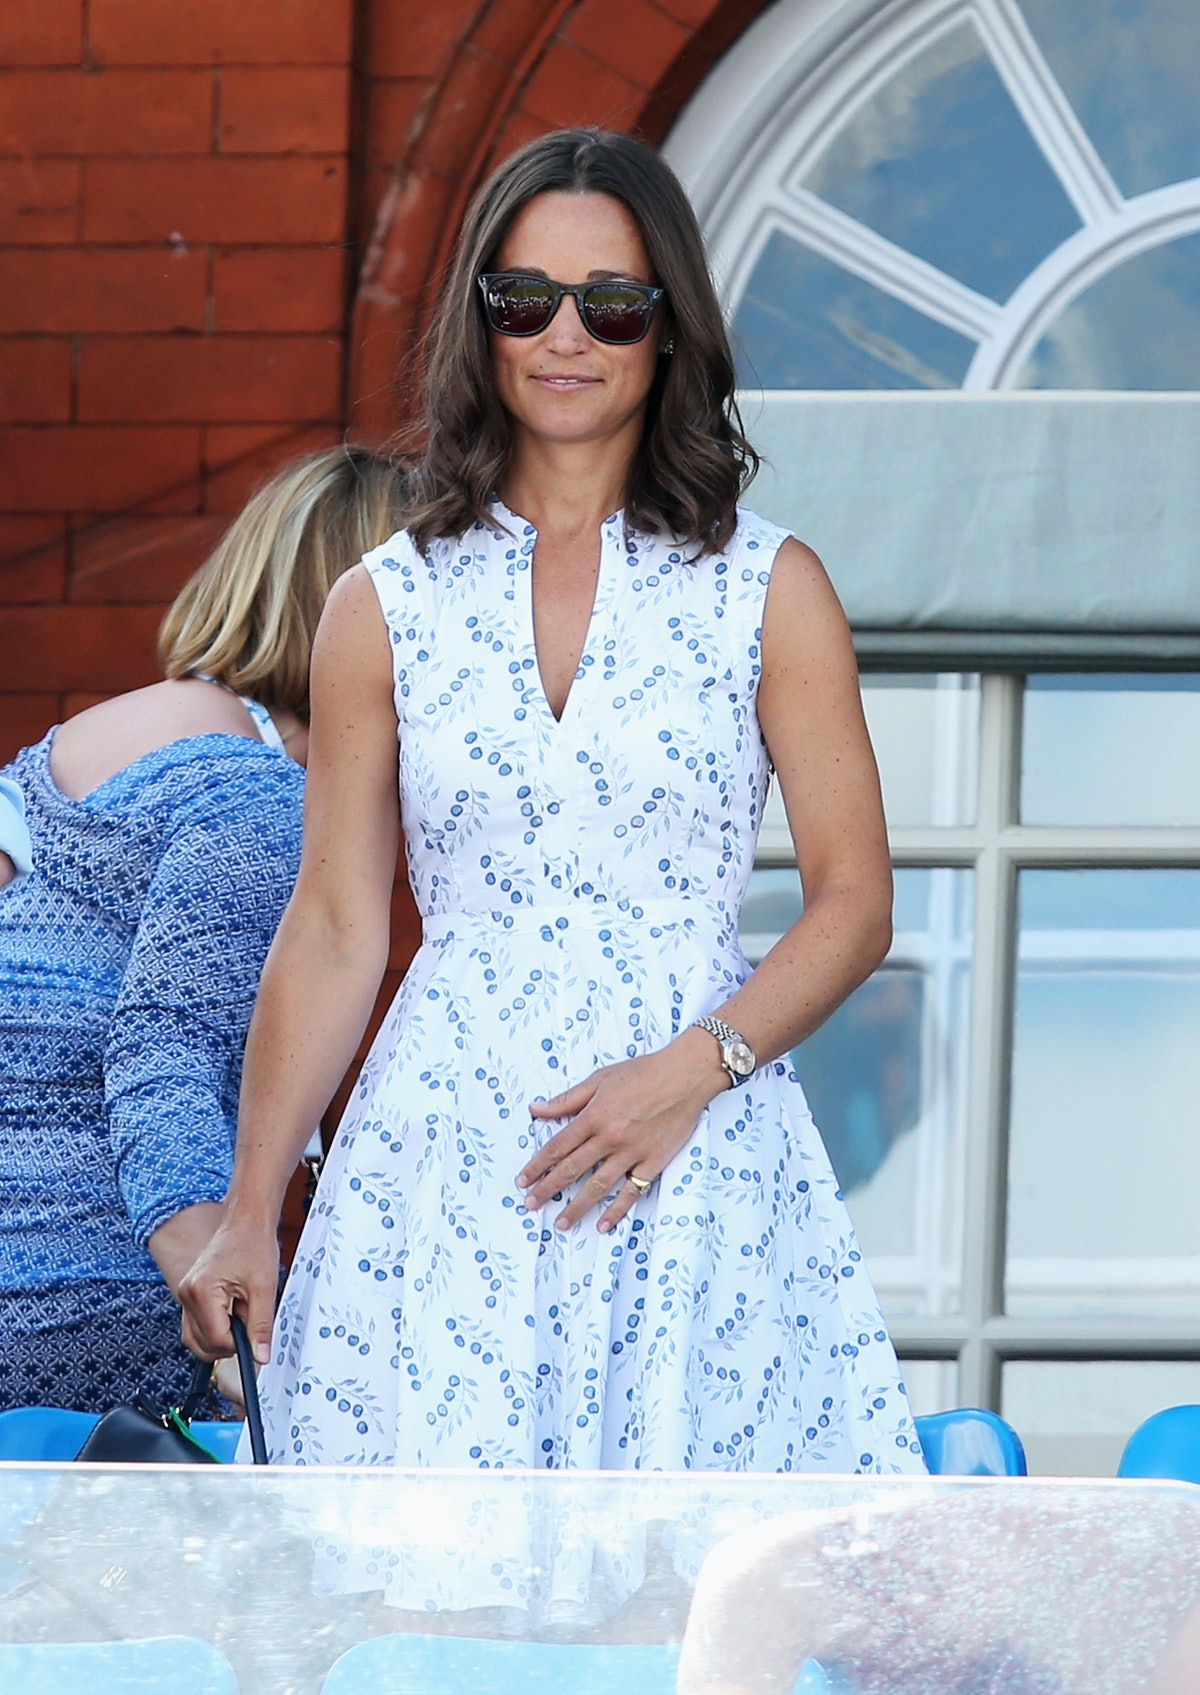 Pippa Middleton's Blue Headband Is The Key To Nailing Wedding-Guest Style